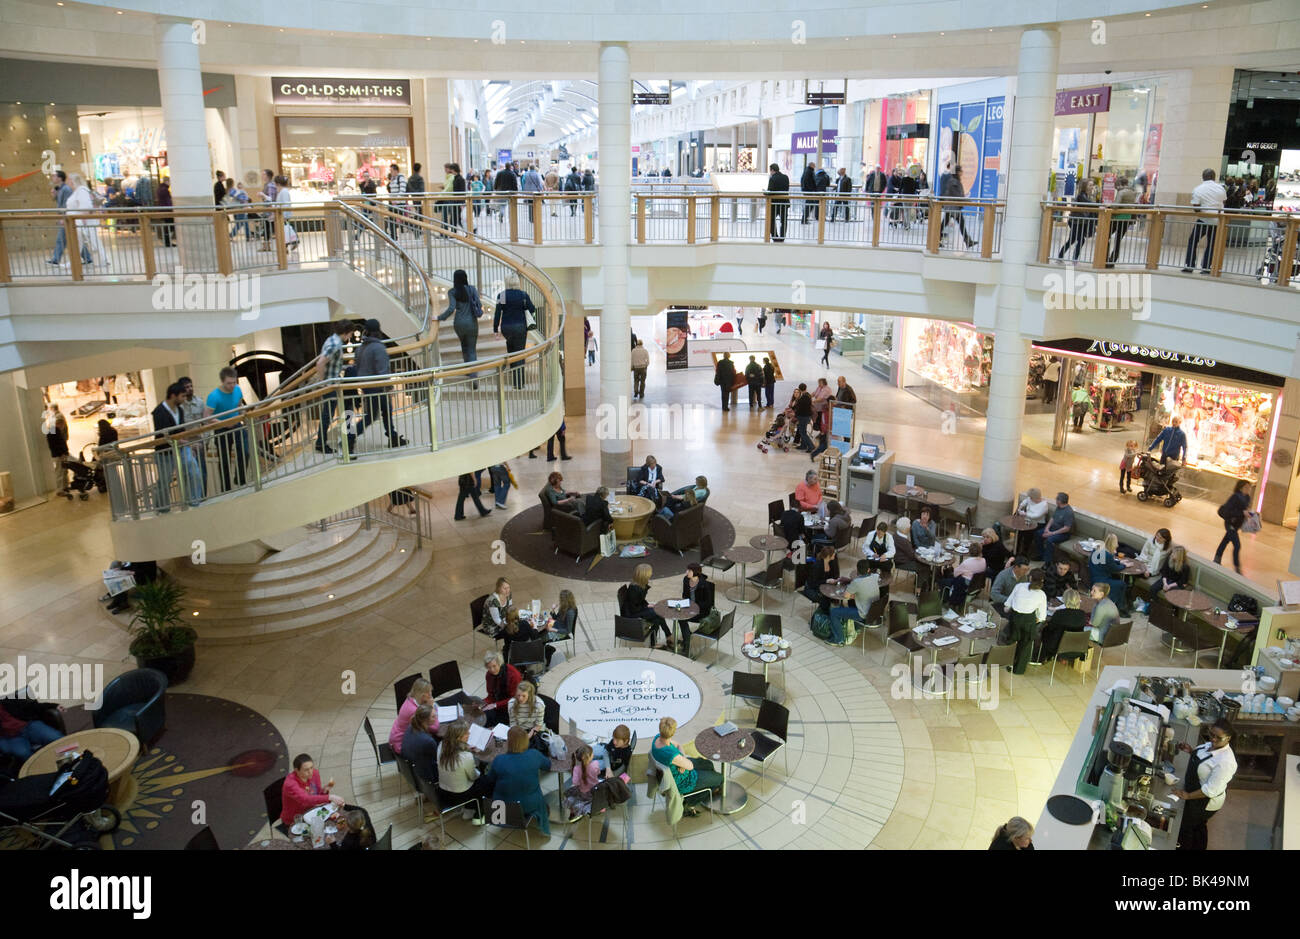 Shoppers at Bluewater shopping centre, Dartford, Kent, UK - Stock Image